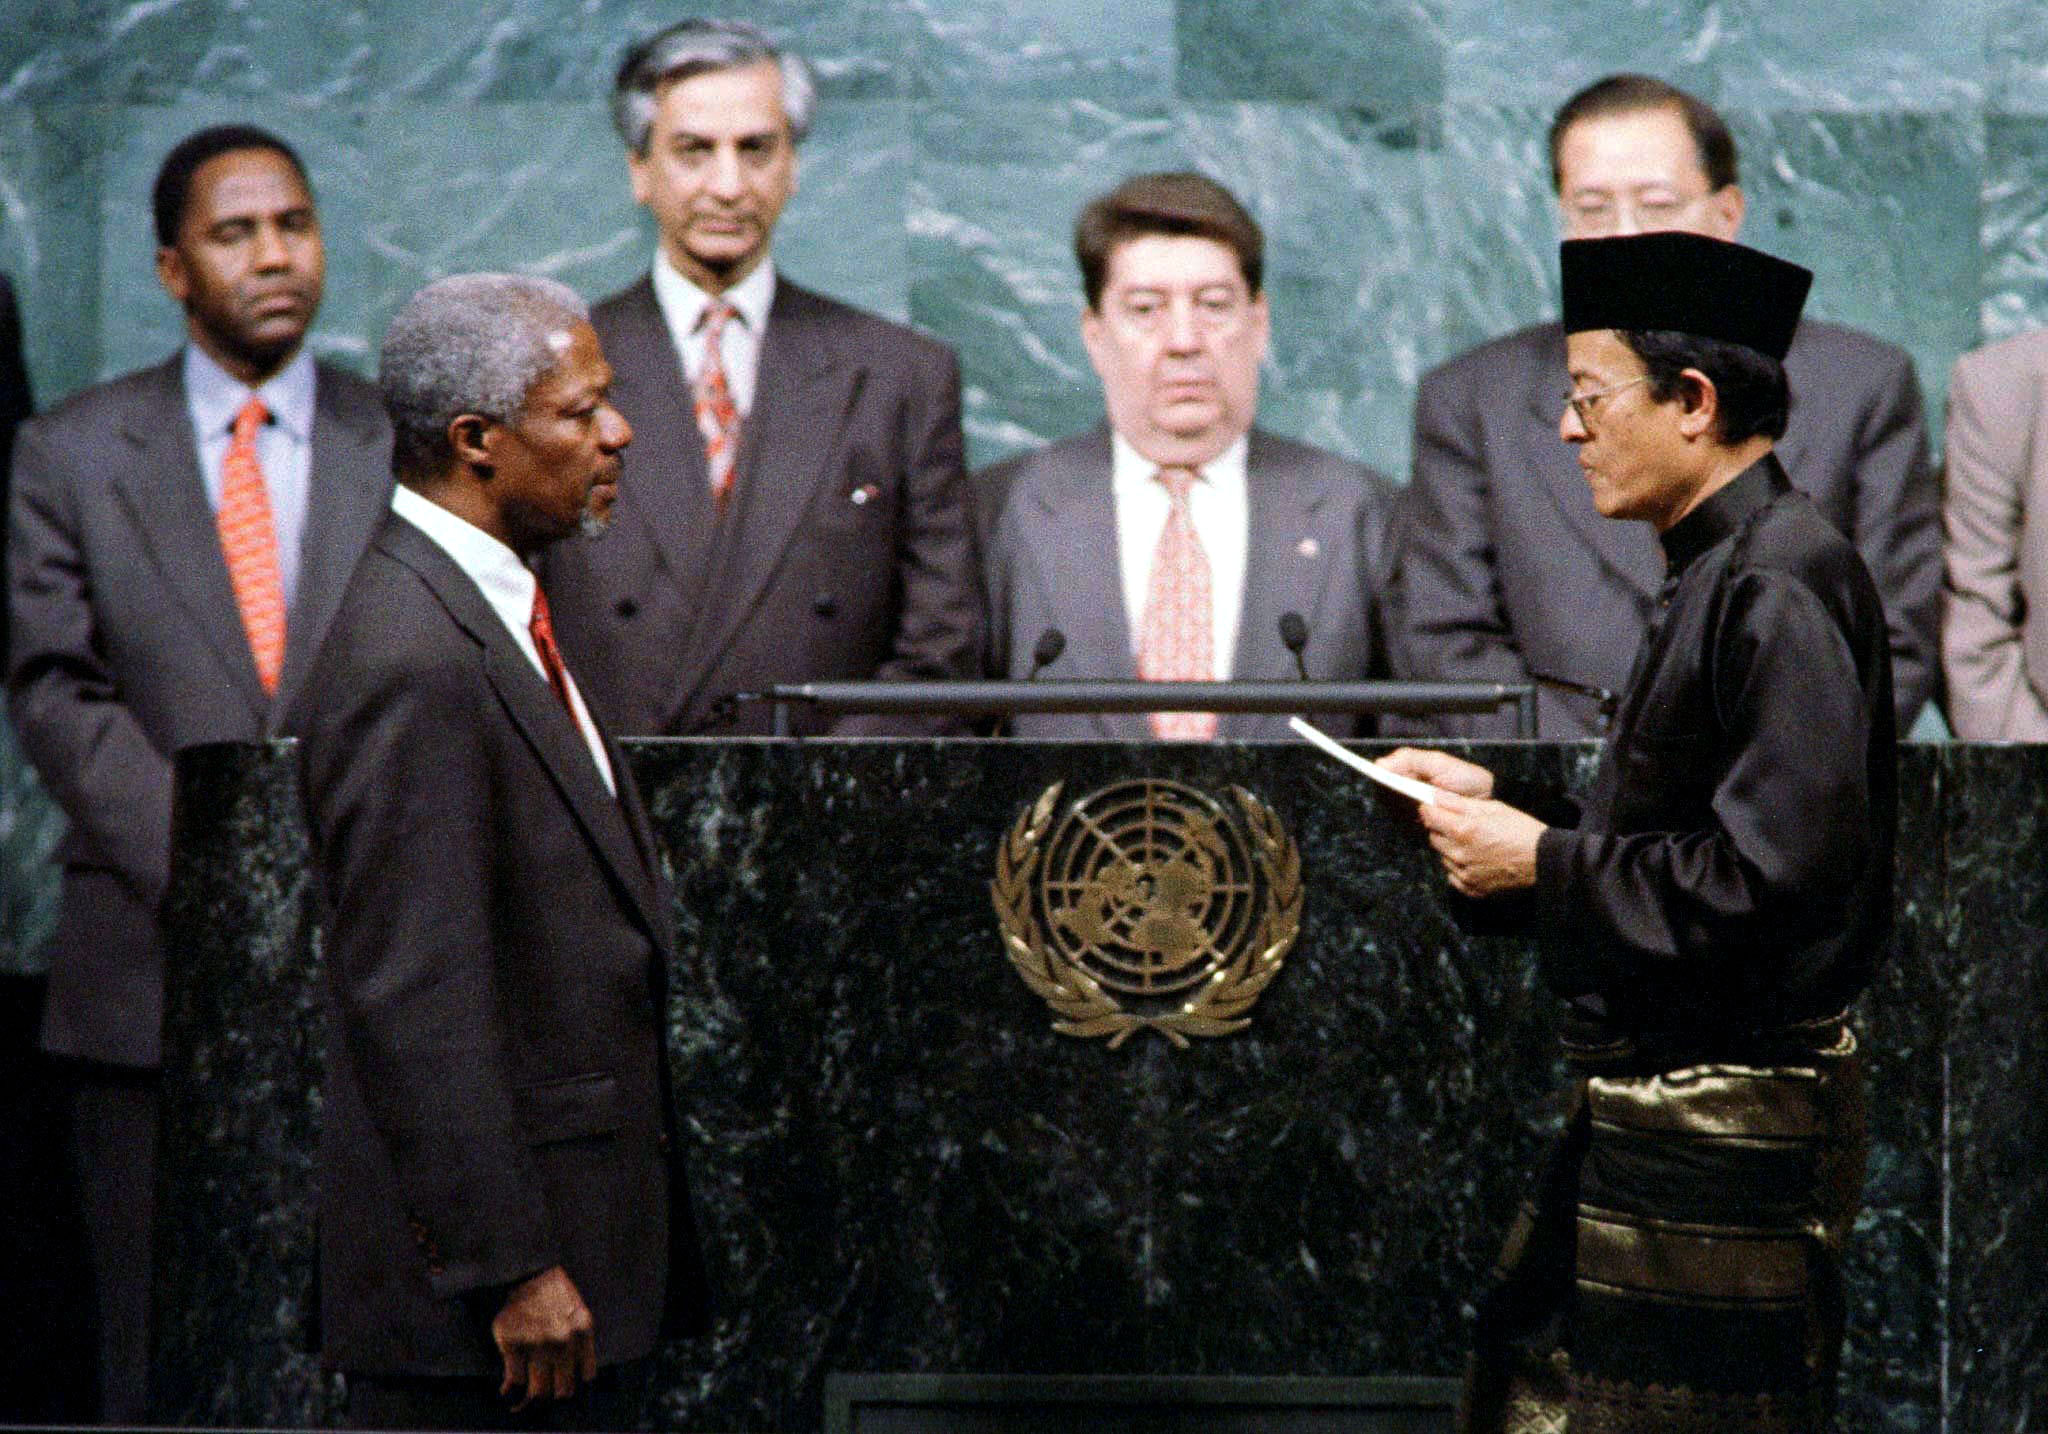 Kofi Annan of Ghana (front L) takes the oath of office as the new United Nations Secretary General from U.N. General Assembly President Razali Ismail of Malaysia (front R) at U.N. headquarters December 17. Kofi Annan is to succeed outgoing Secretary General-Boutros-Boutros-Ghali of Egypt whose term expires December 31. People at rear are unidentified. - PBEAHUMYSDY